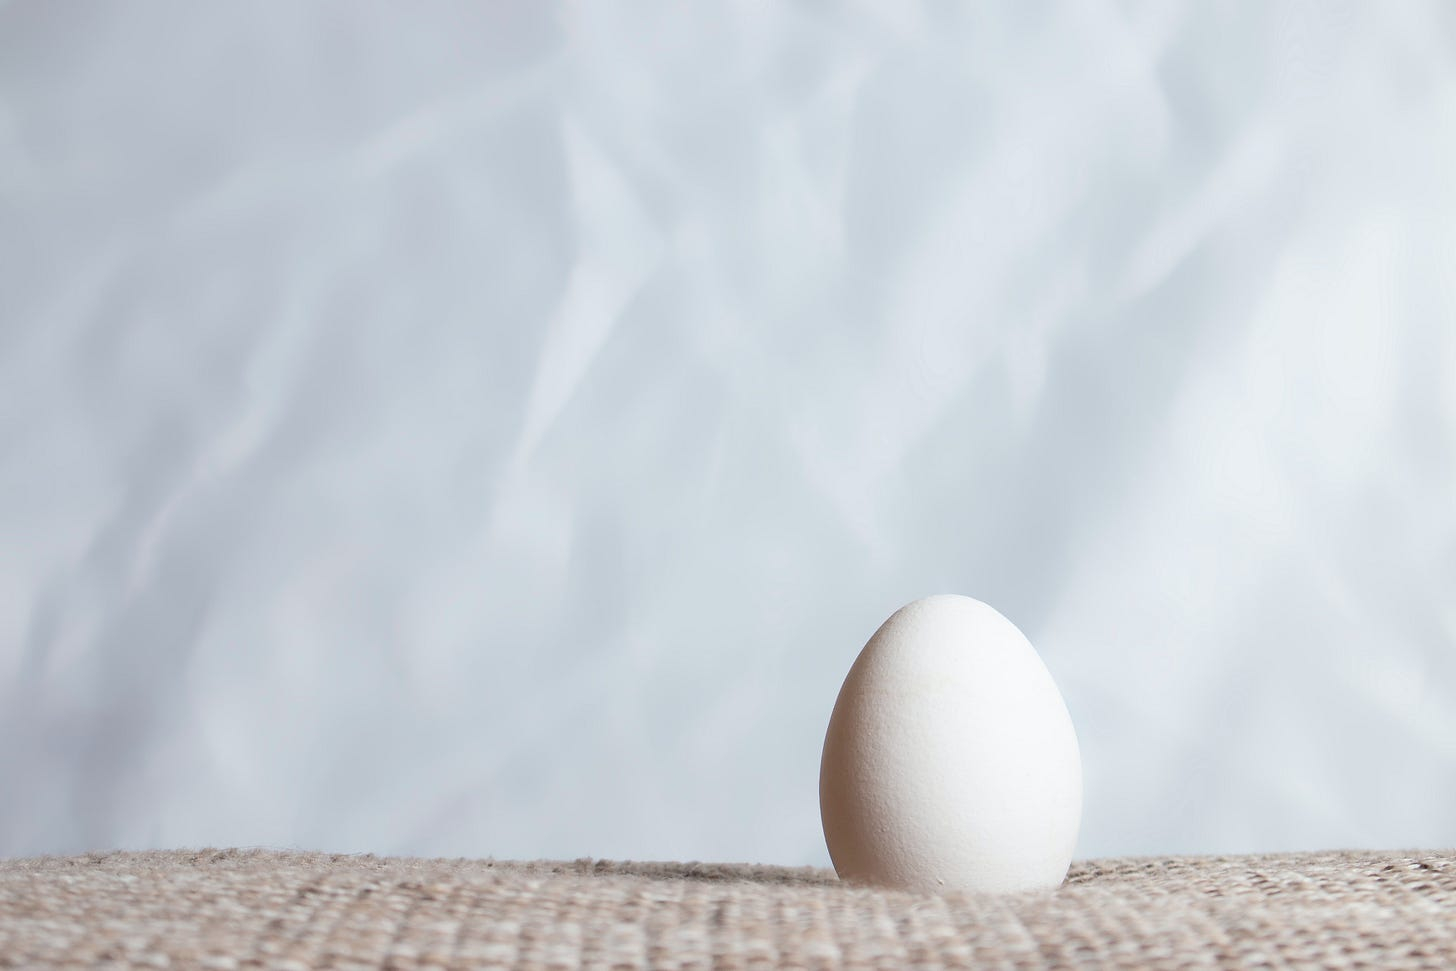 A single egg with a papery background